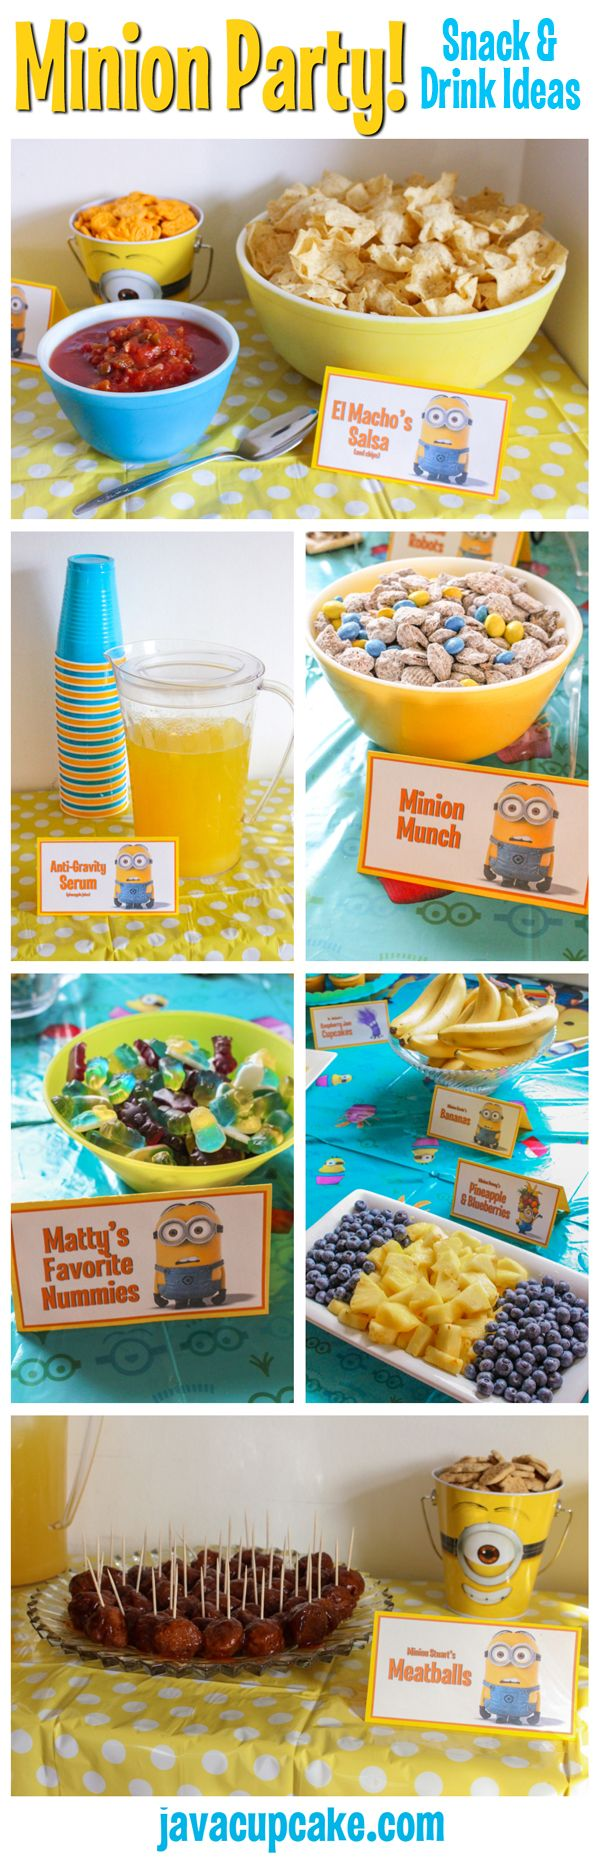 Minion Birthday Party - Food & Drink Ideas | JavaCupcake.com